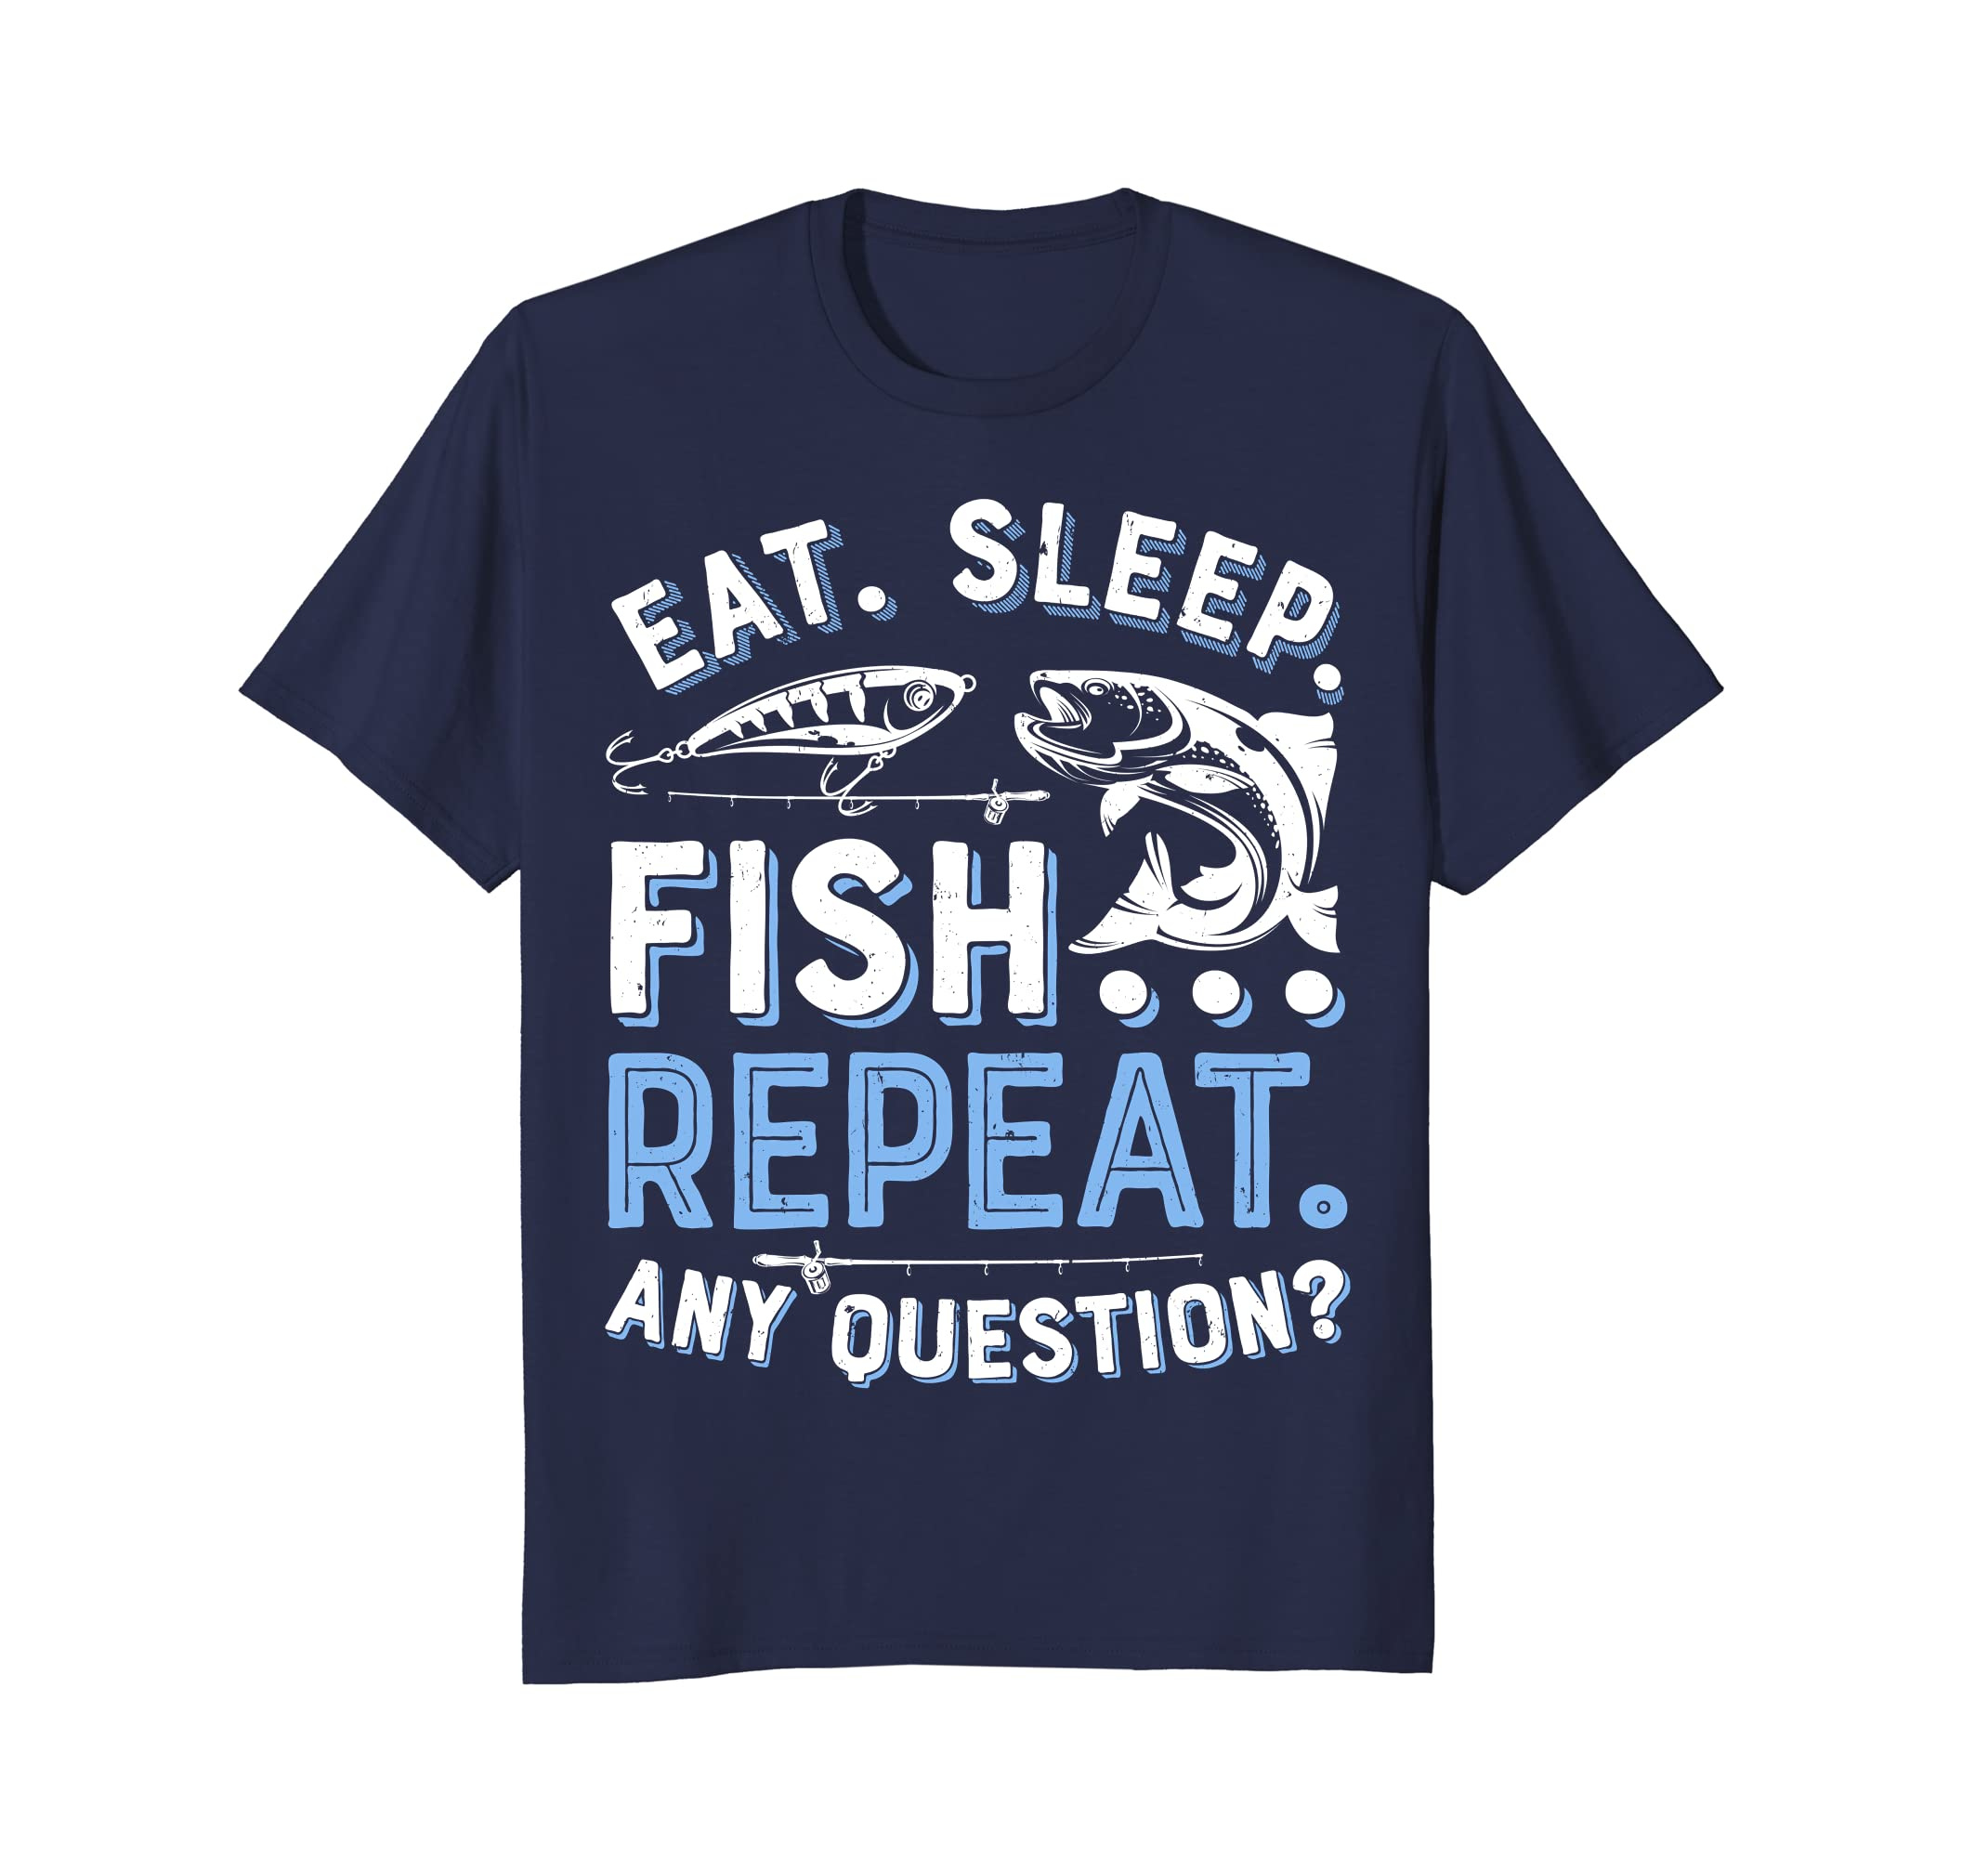 382443ec Eat Sleep Fish Repeat T shirt Men Women Kids Fishing Boys-ah my ...